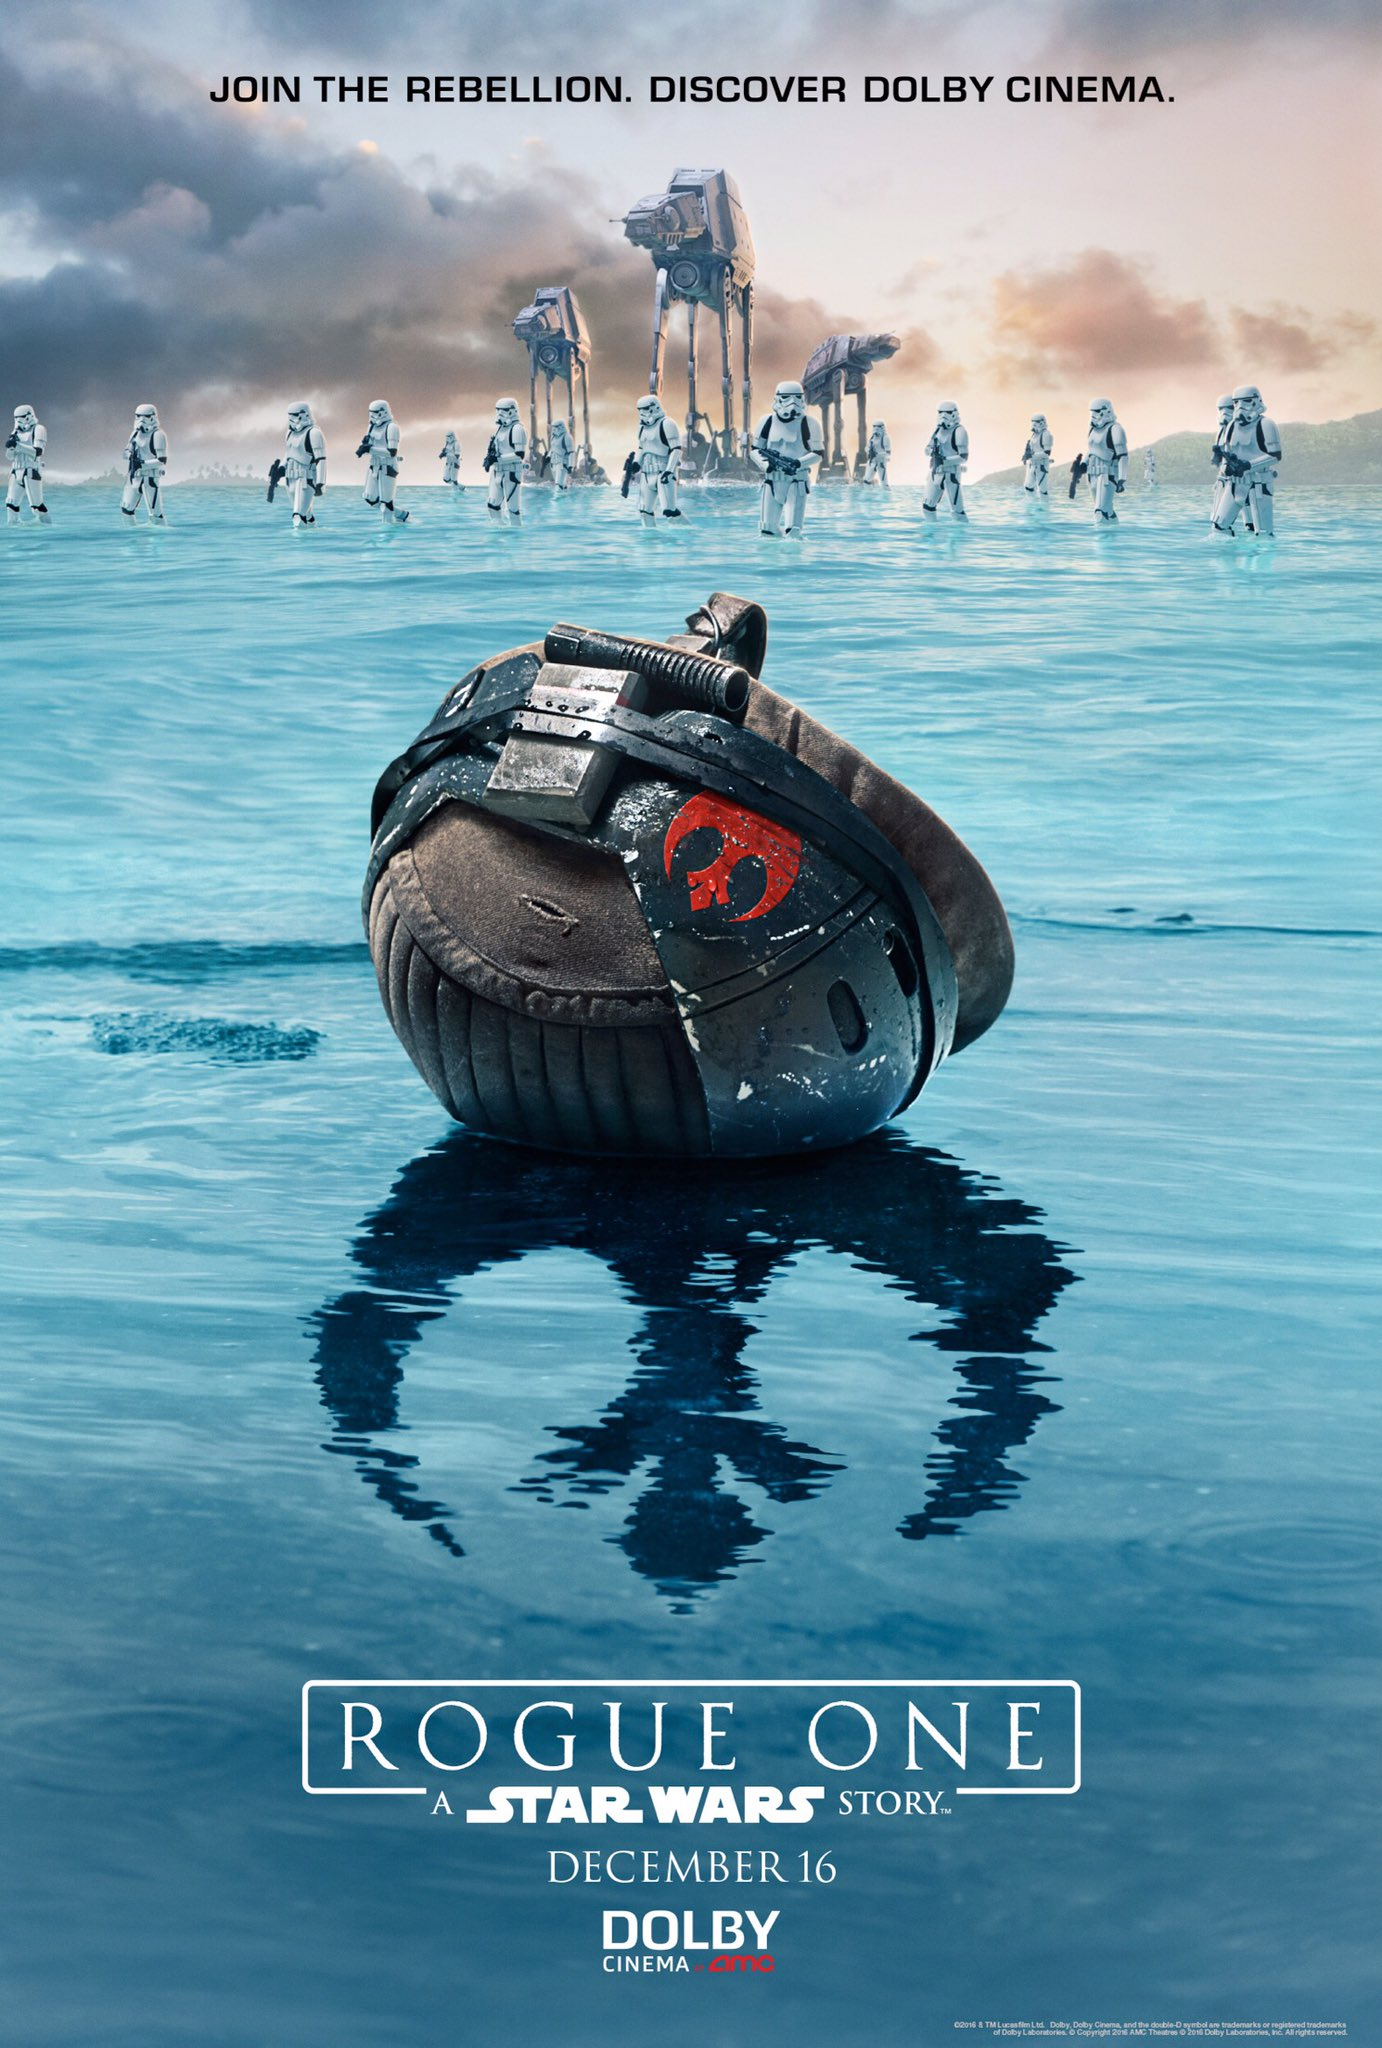 Rogue one Dolby Release Poster